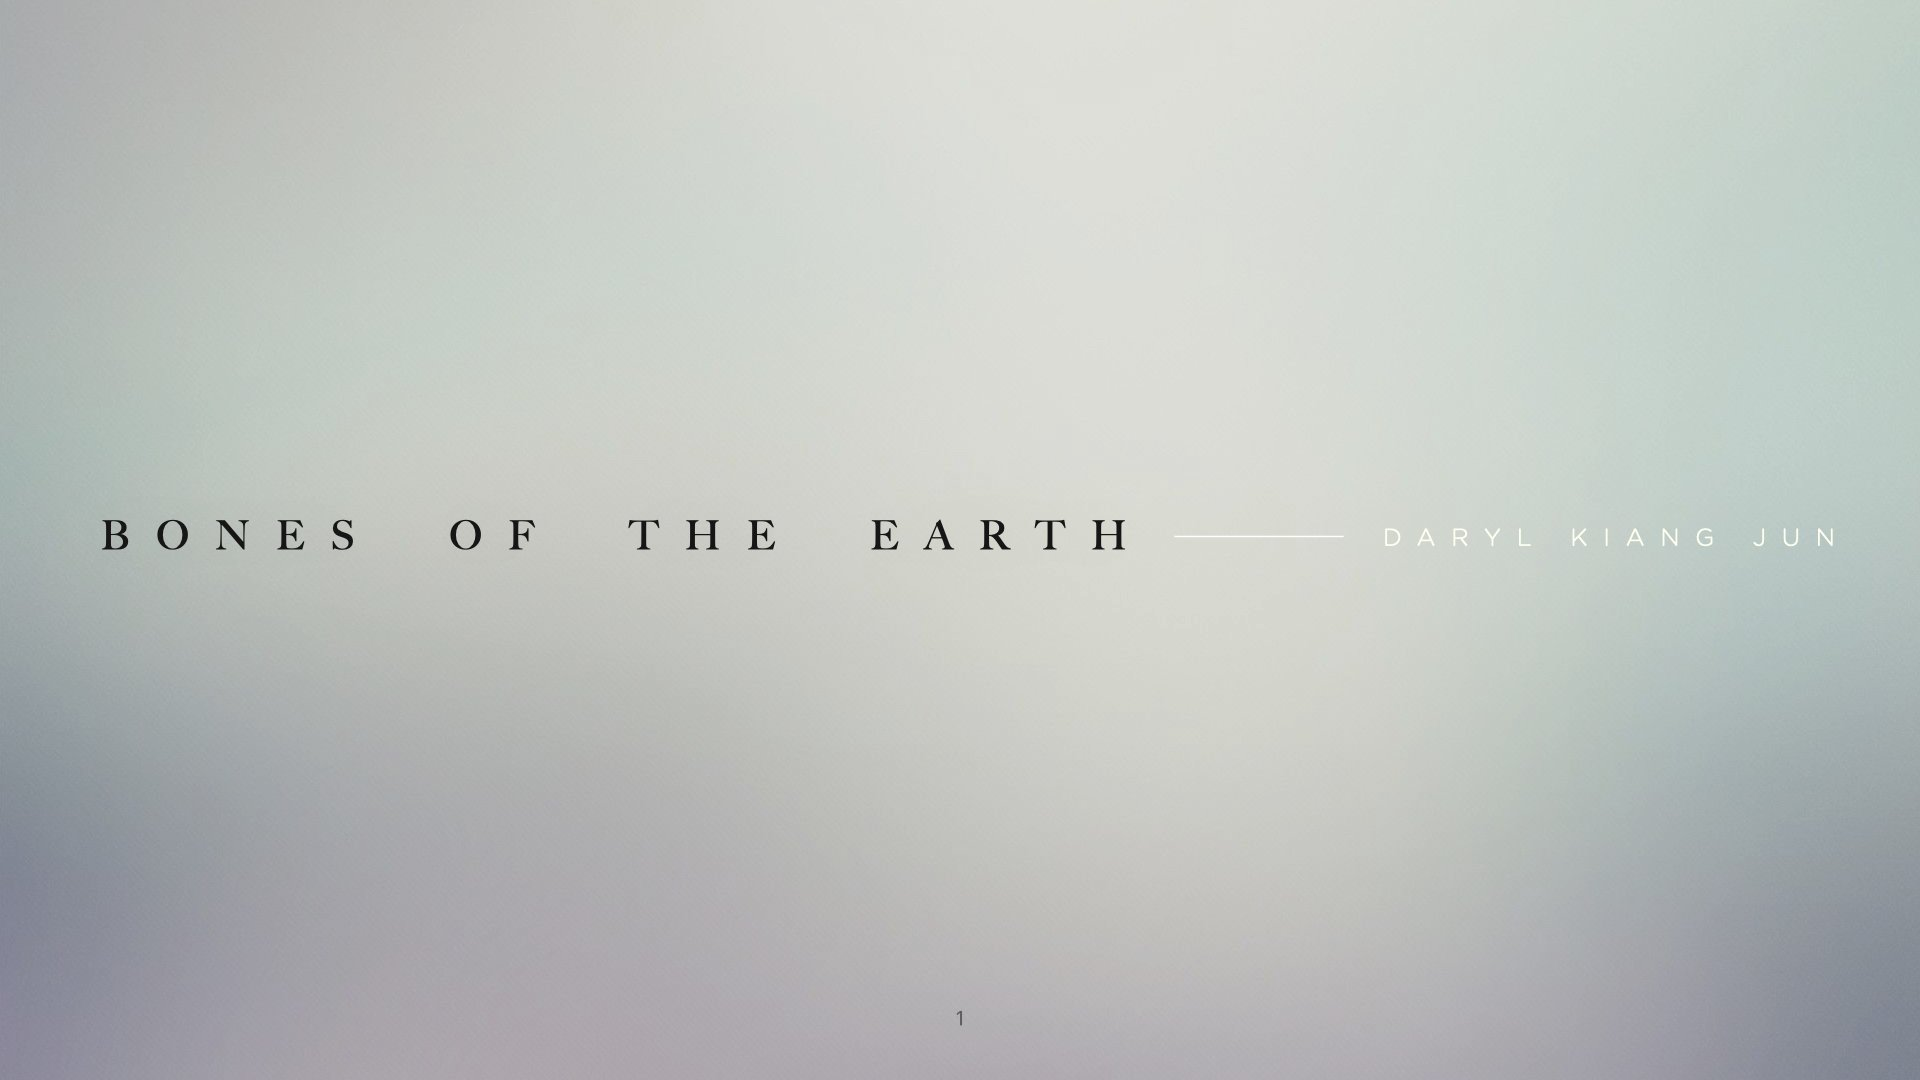 Final Year Project Proposal: Bones of the Earth